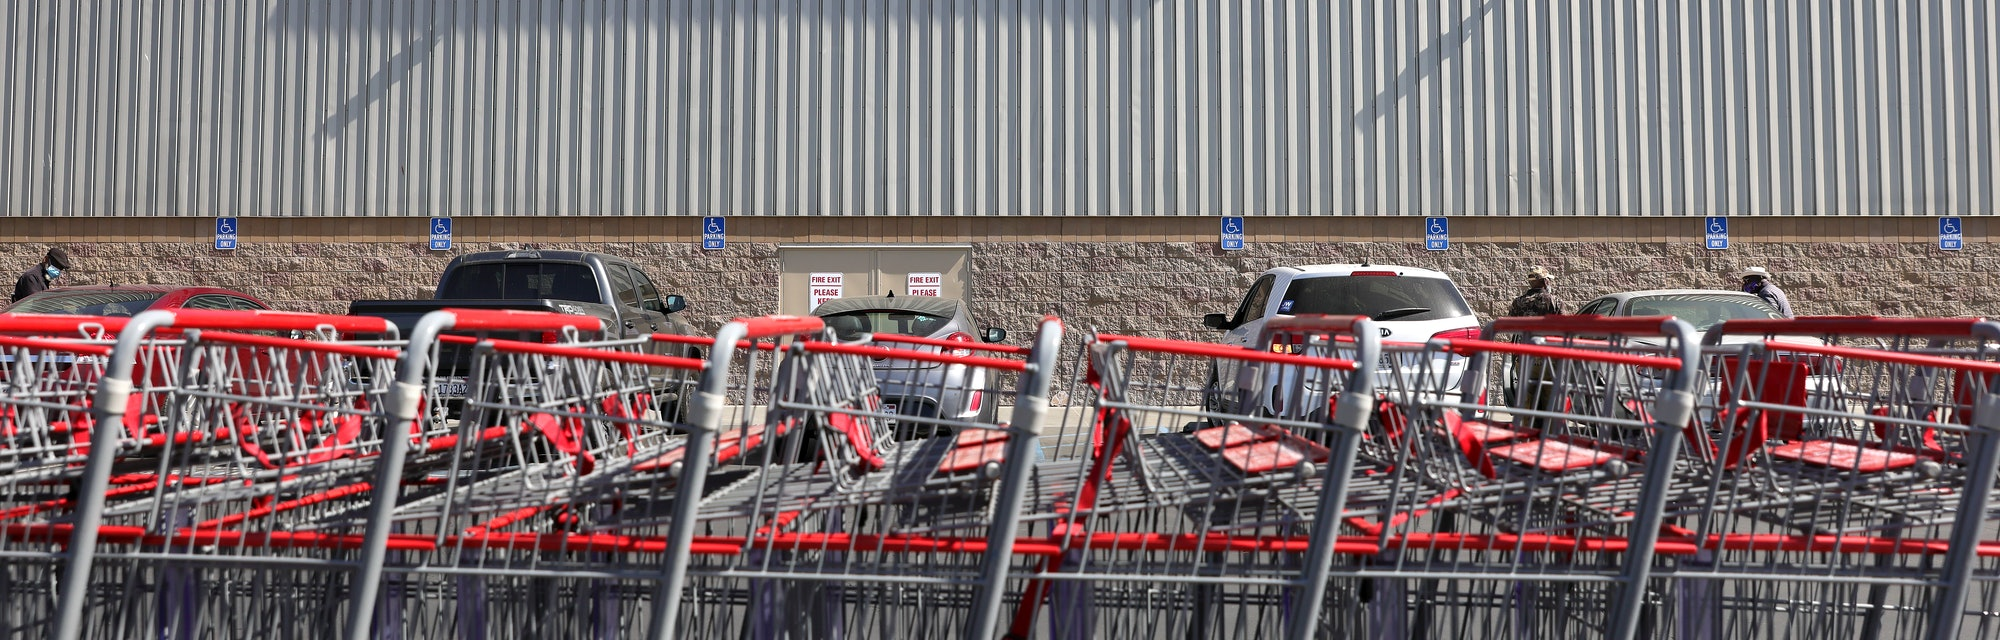 INGLEWOOD, CALIFORNIA - FEBRUARY 25: Shopping carts are lined up in front of a Costco store on Febru...